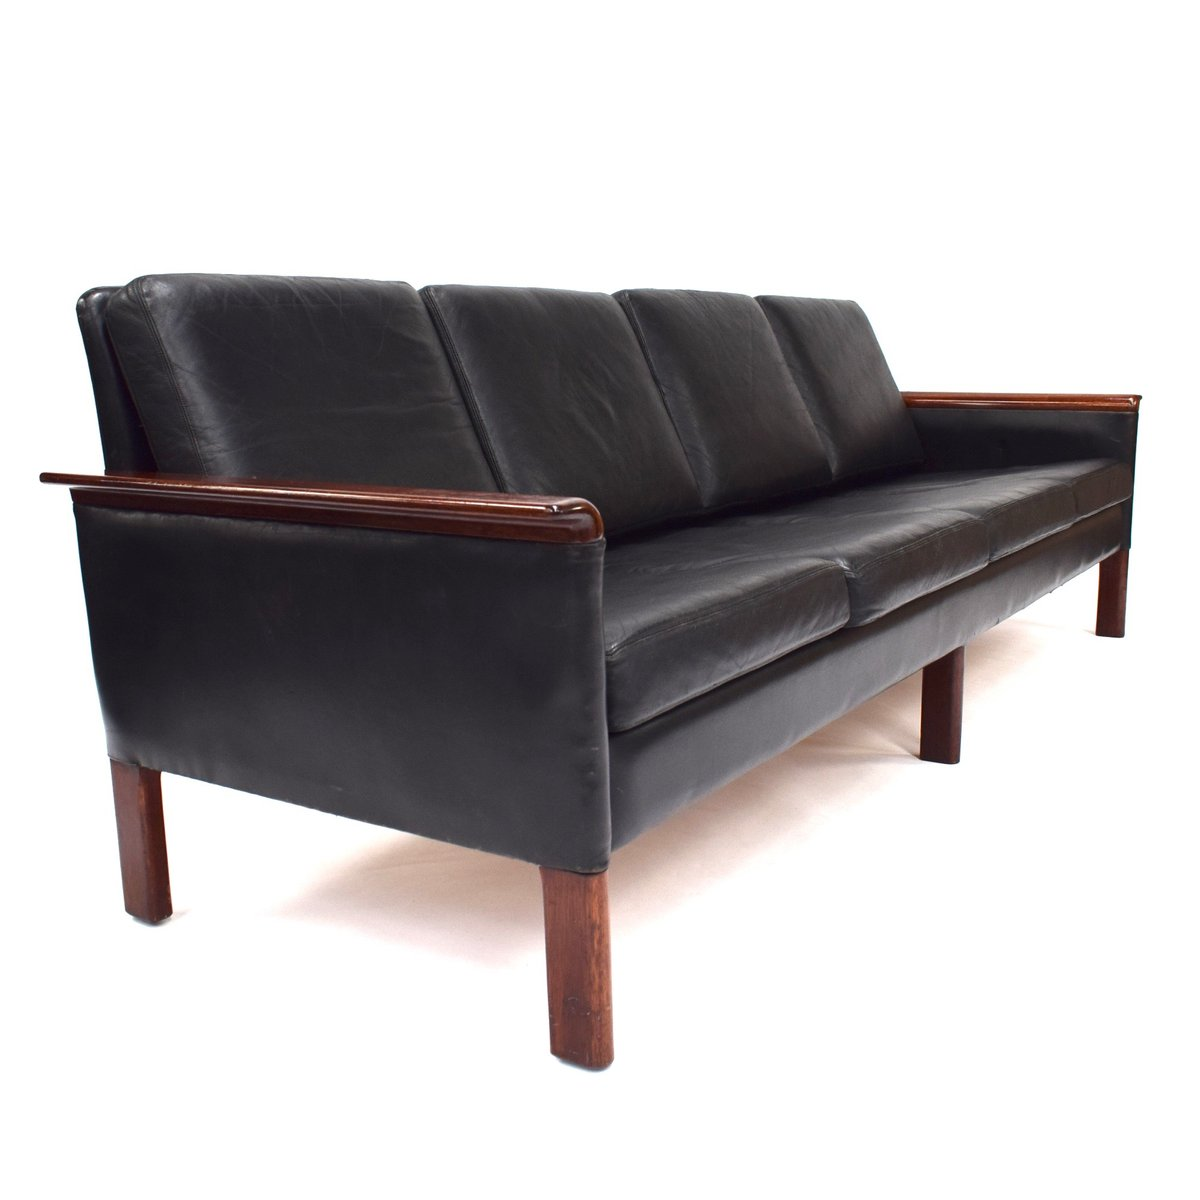 Scandinavian Sofas For Sale Scandinavian Black Leather Sofa 1950s For Sale At Pamono